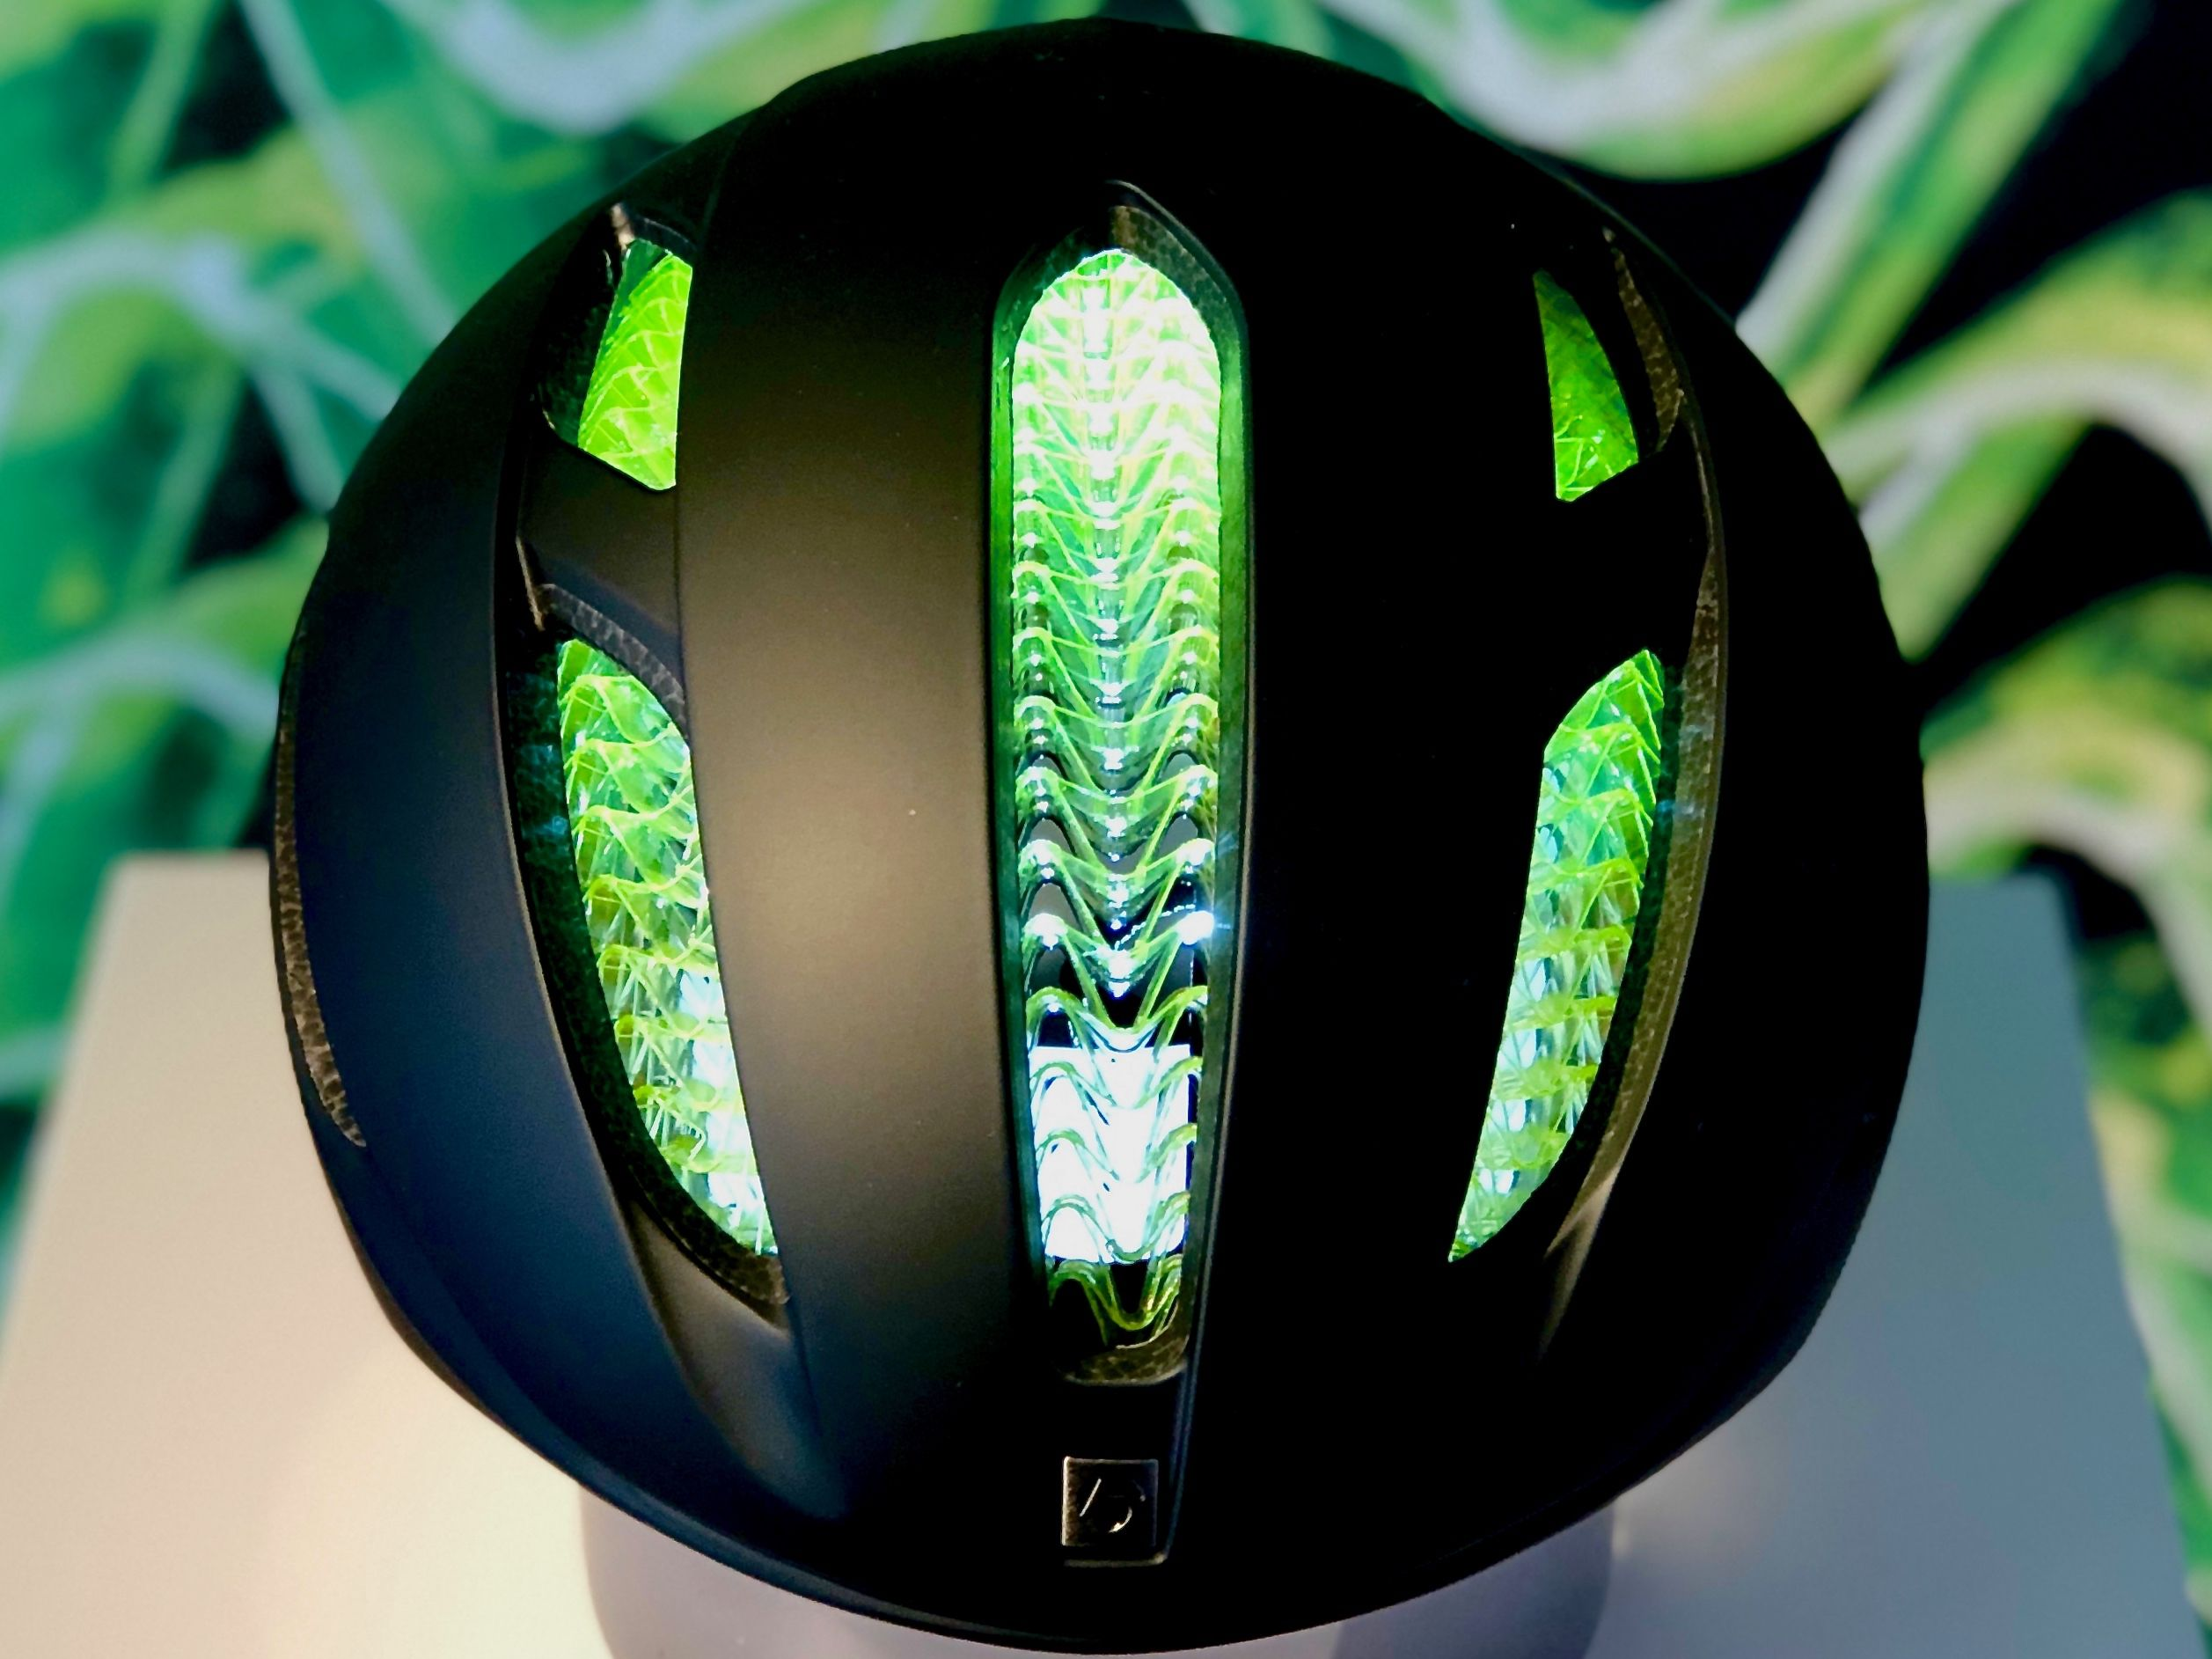 Bontrager Says Its New Helmets Can Prevent Concussions 99 out of 100 times